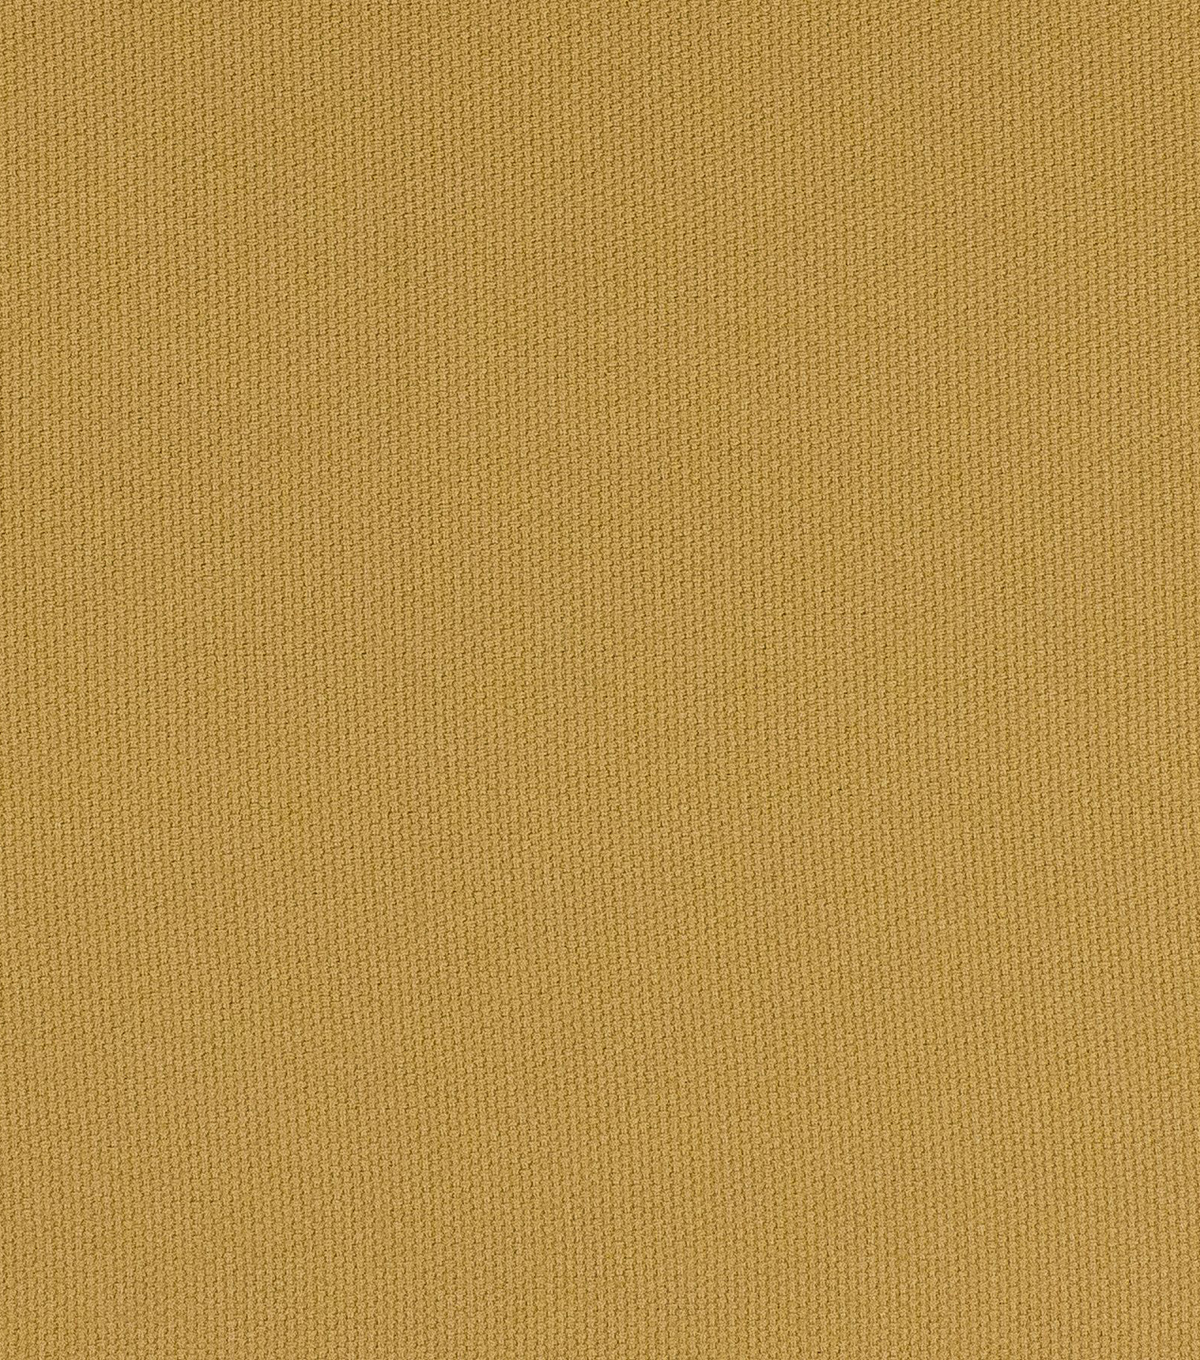 Home Decor 8\u0022x8\u0022 Fabric Swatch-Elite Orion Soft Gold